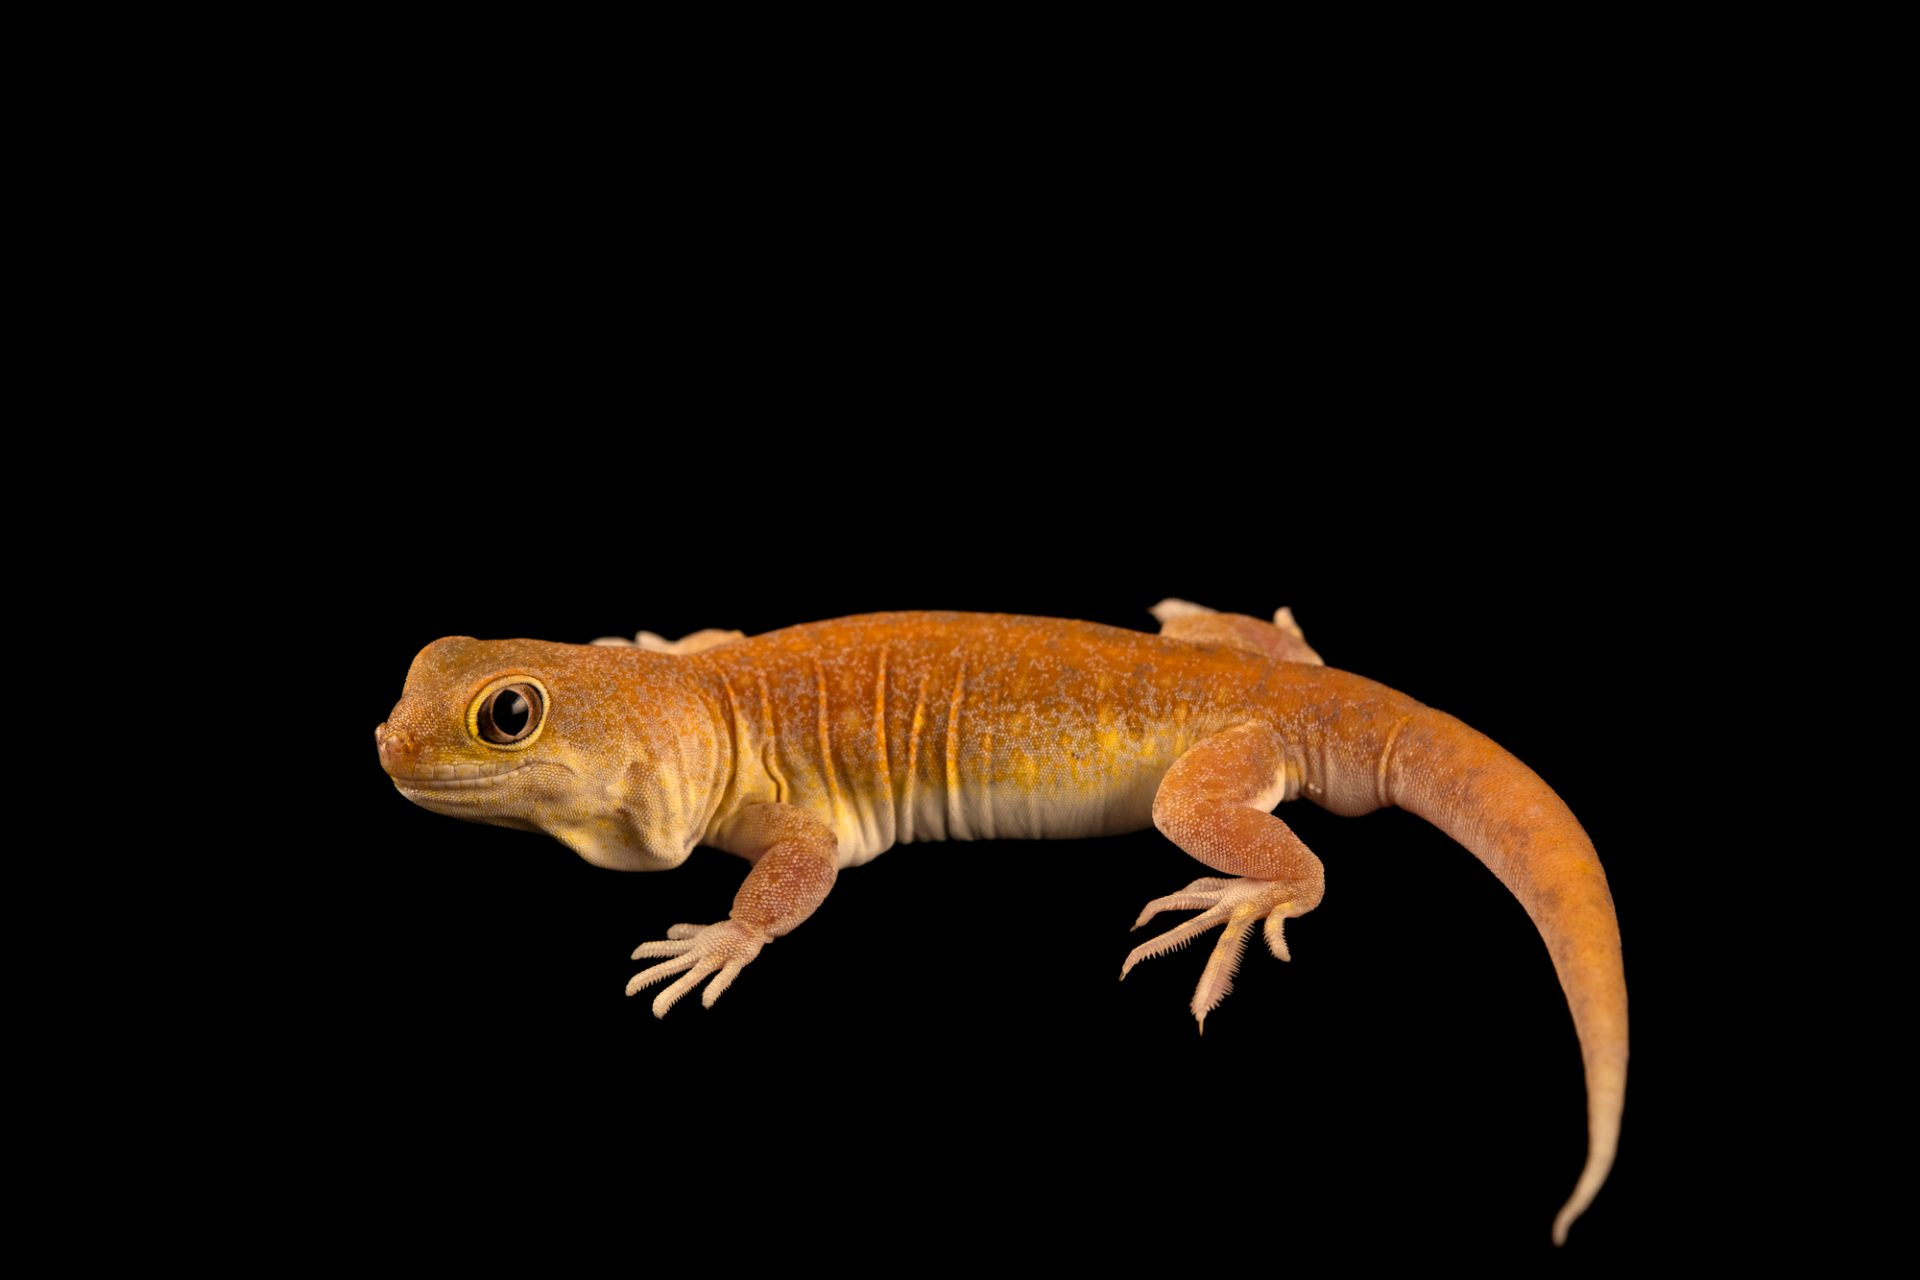 Photo: A KochÕs barking gecko (Ptenopus kochi) from a private collection.